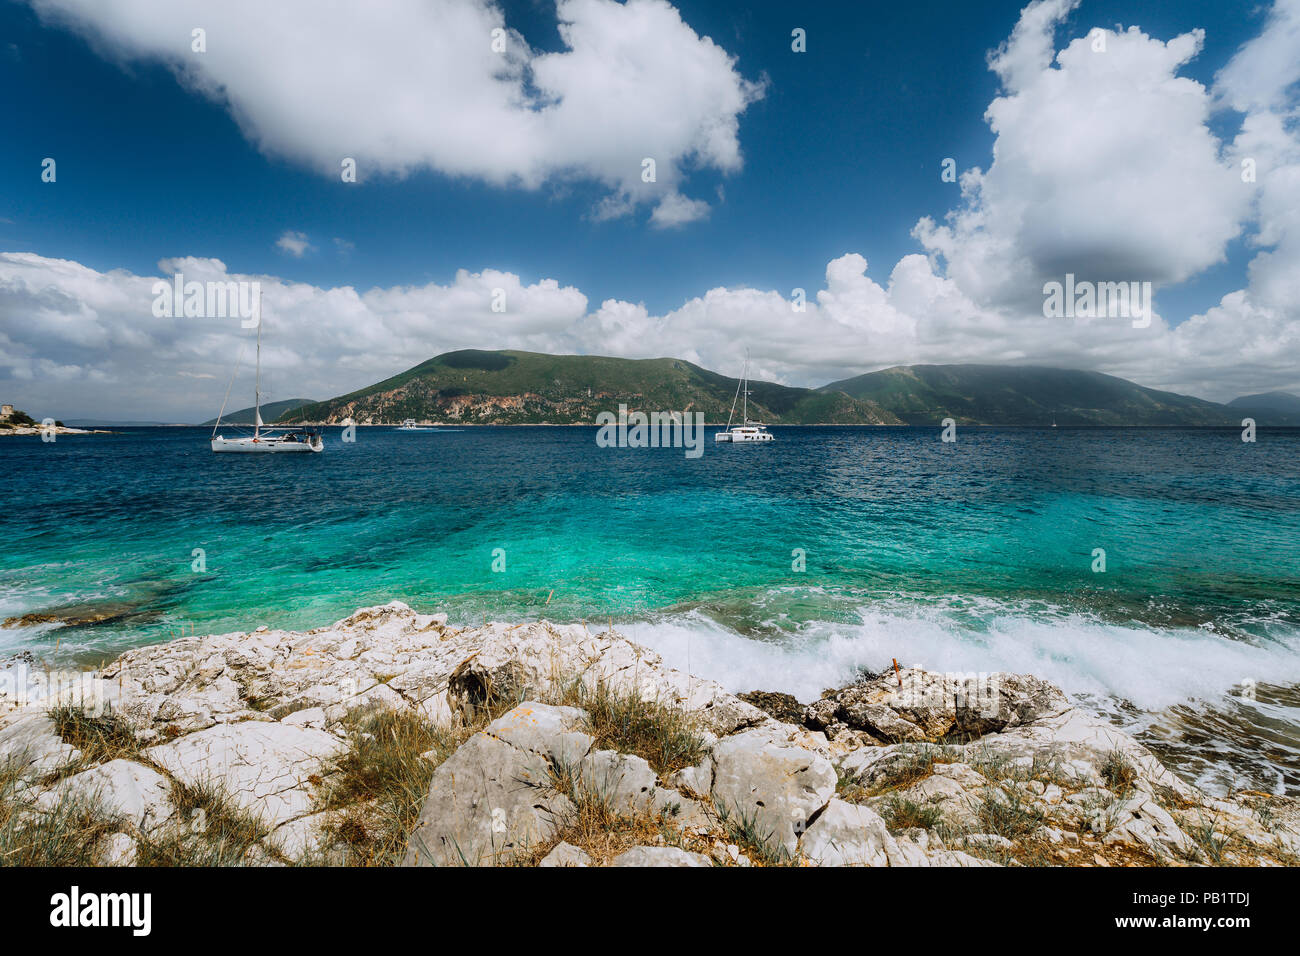 Crystal clear transparent blue turquoise teal Mediterranean sea water in Fiskardo town. White yacht in open sea at anchor under amazing white clouds, Kefalonia, Ionian islands, Greece - Stock Image